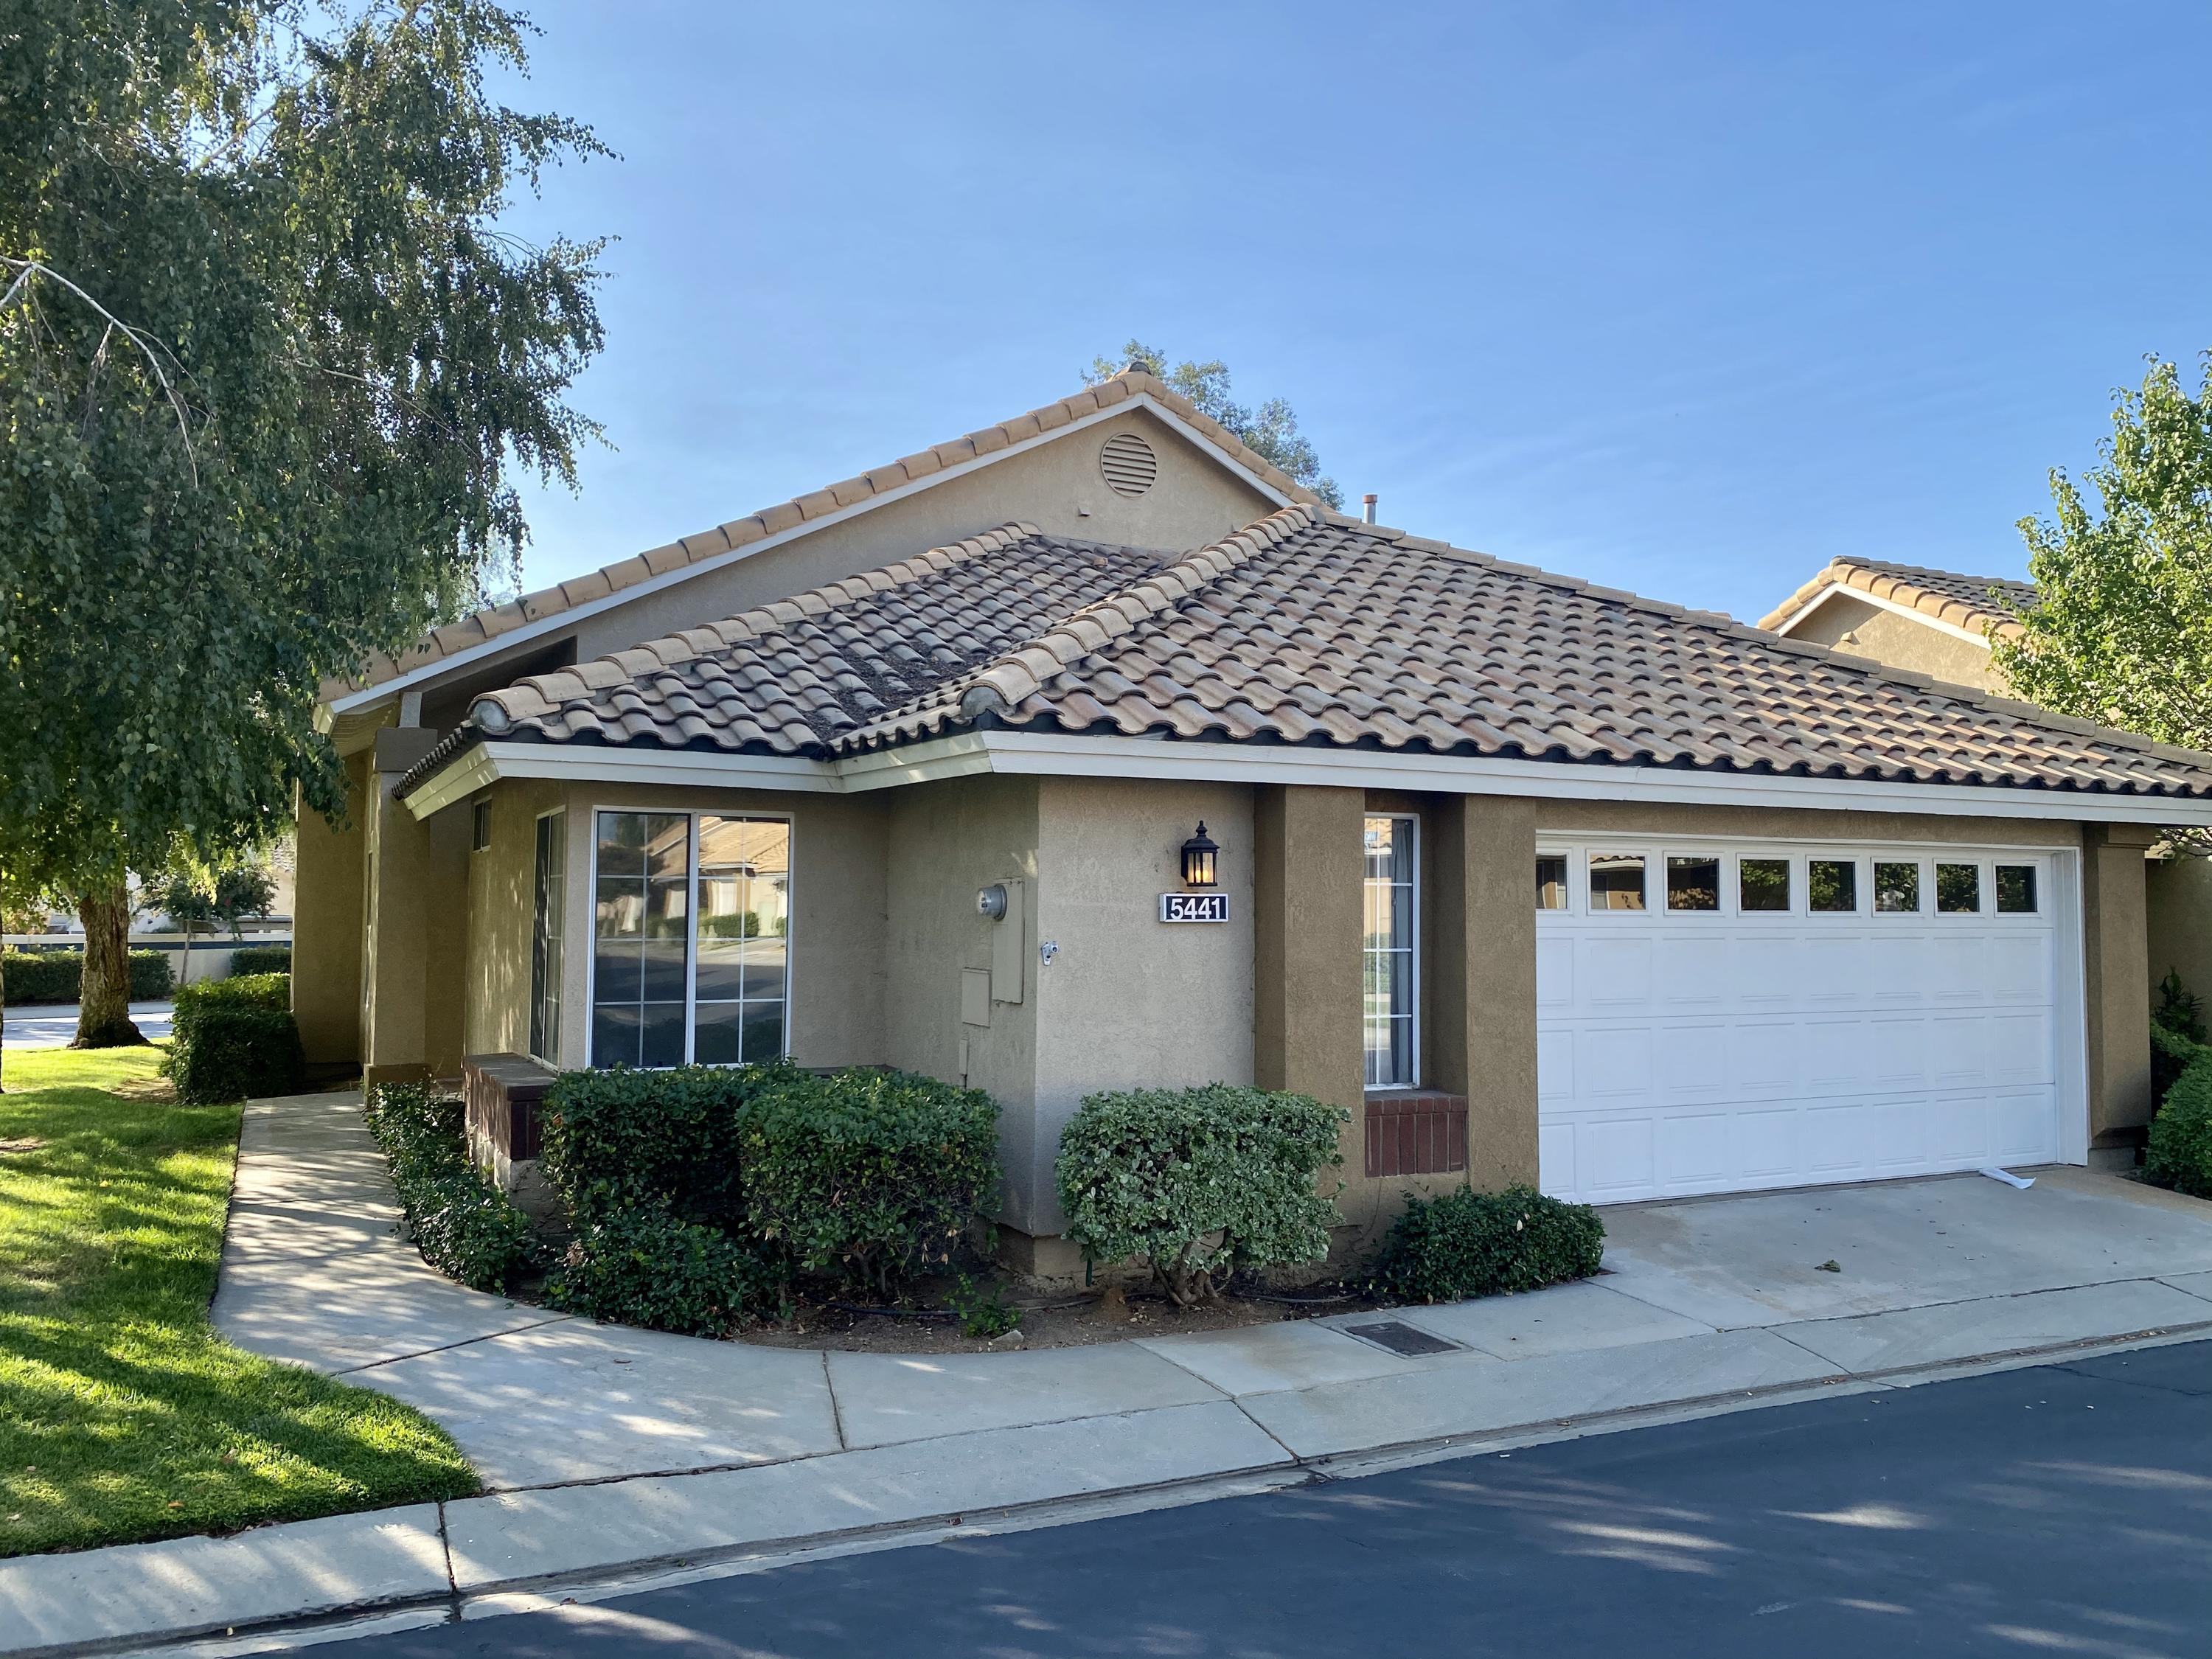 Photo of 5441 Nicklaus Drive, Banning, CA 92220